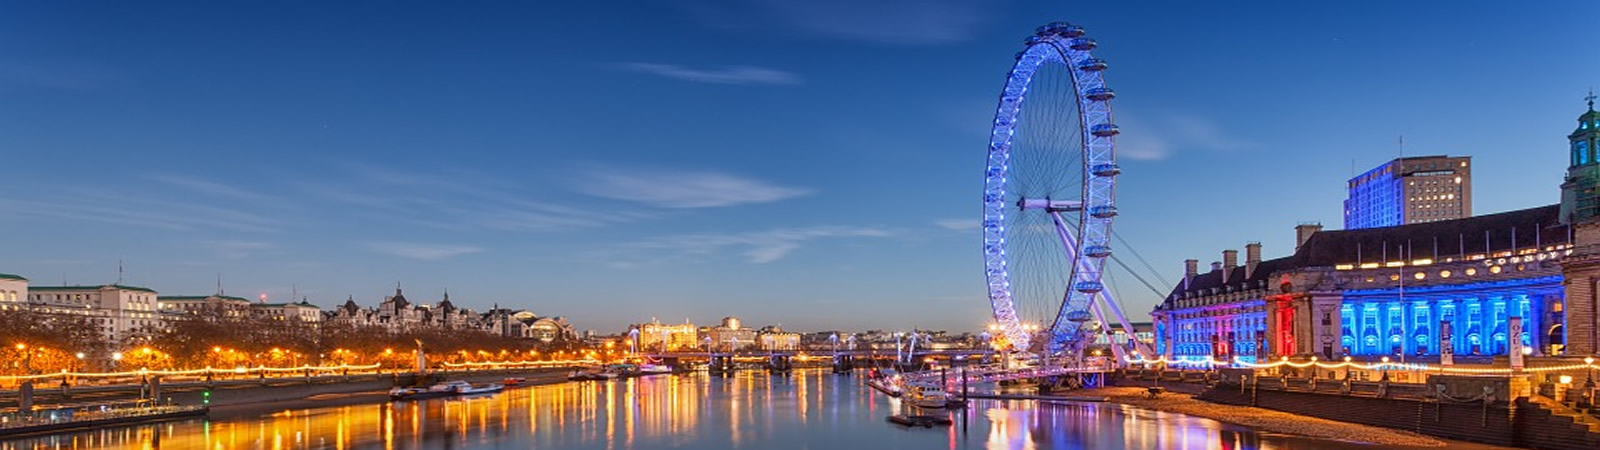 Top 5 Things To Do In London September 2018